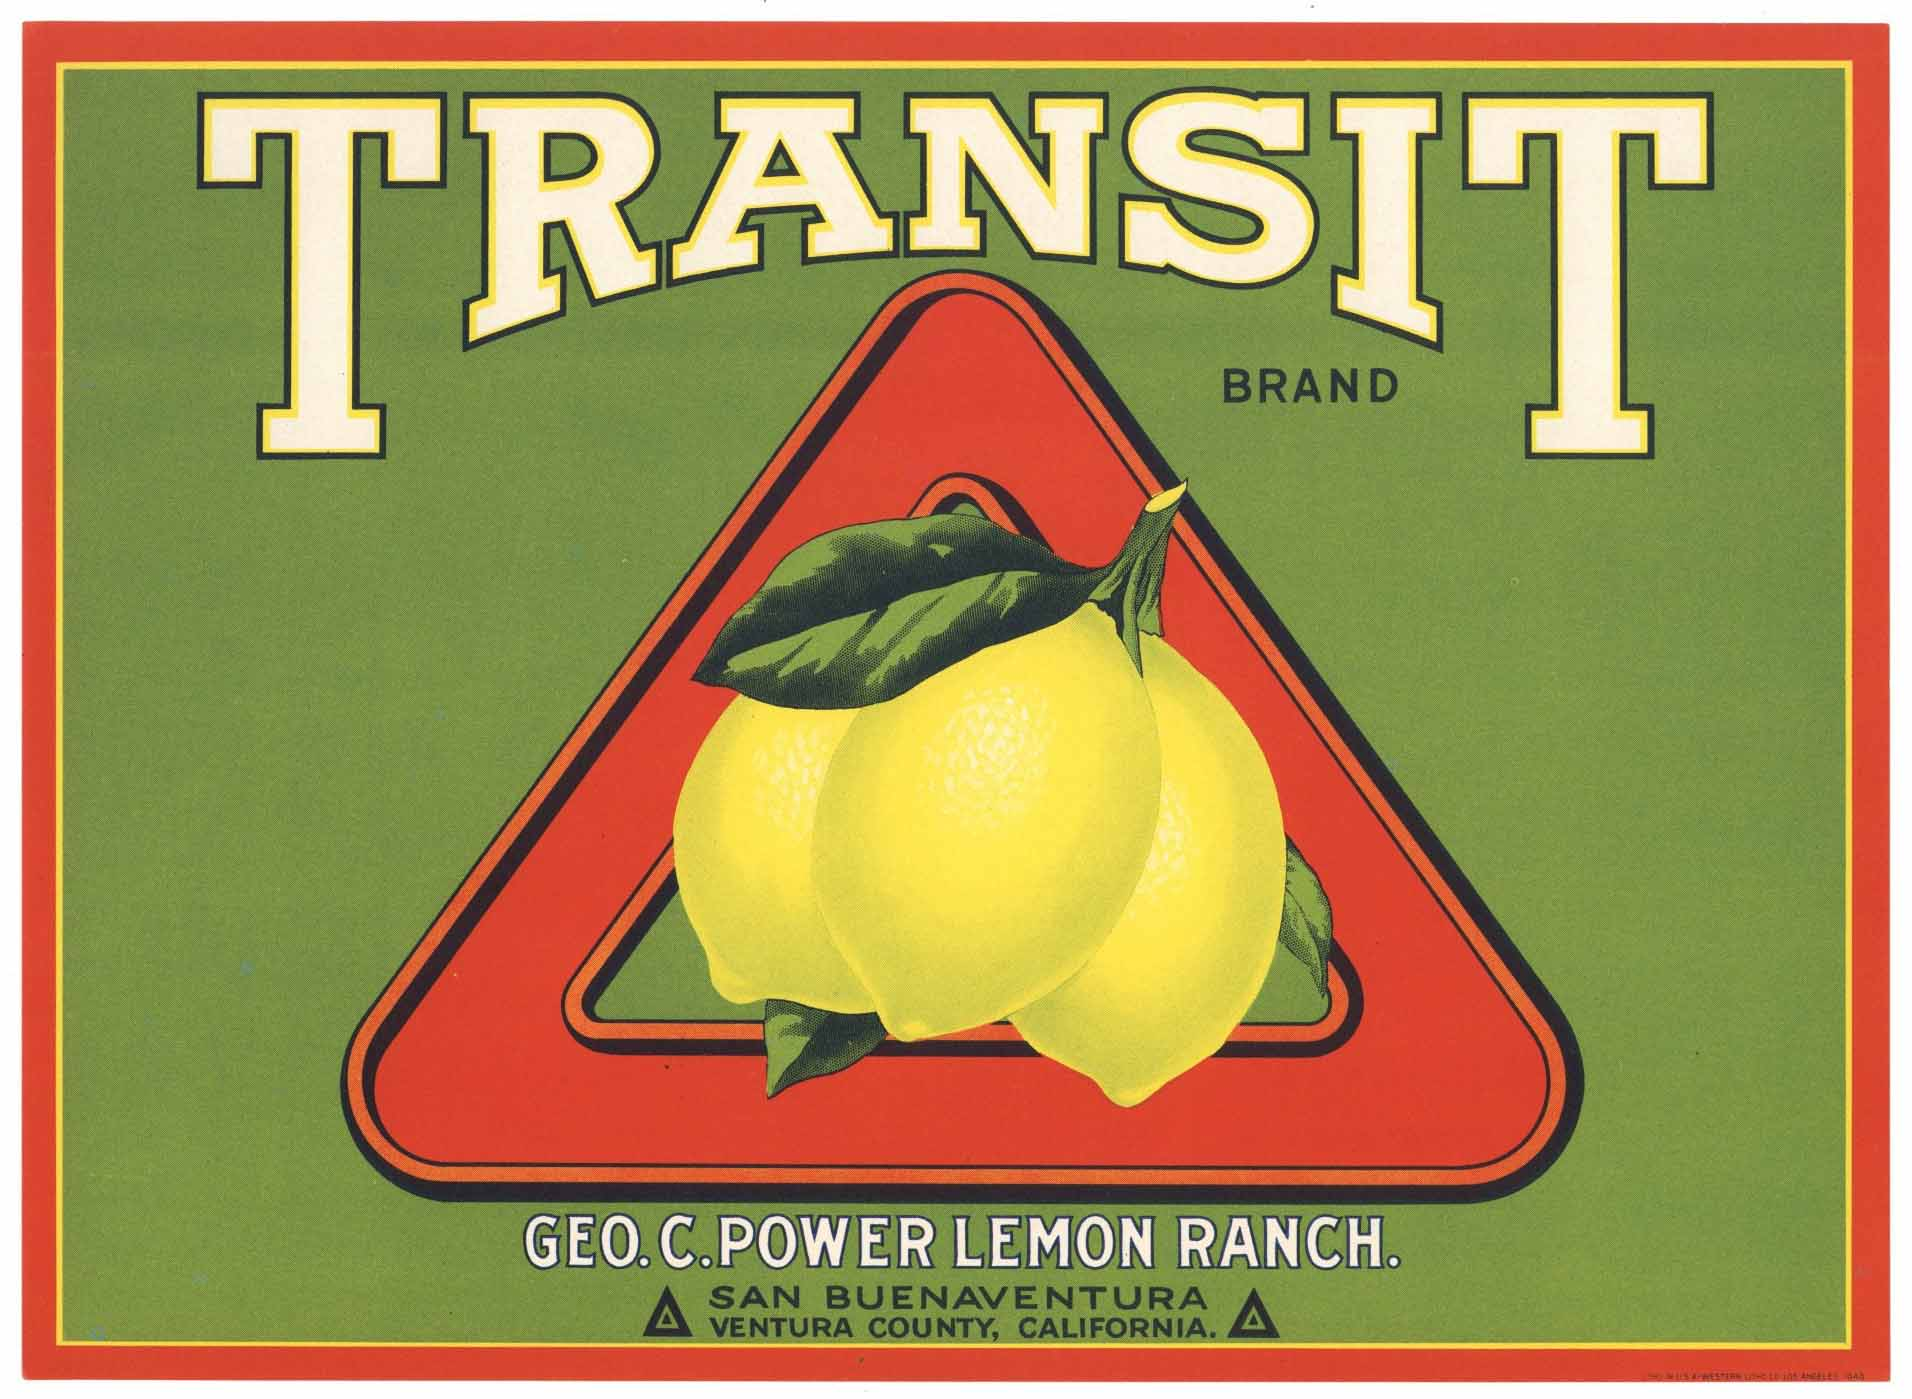 Transit Brand Vintage Ventura County California Lemon Crate Label